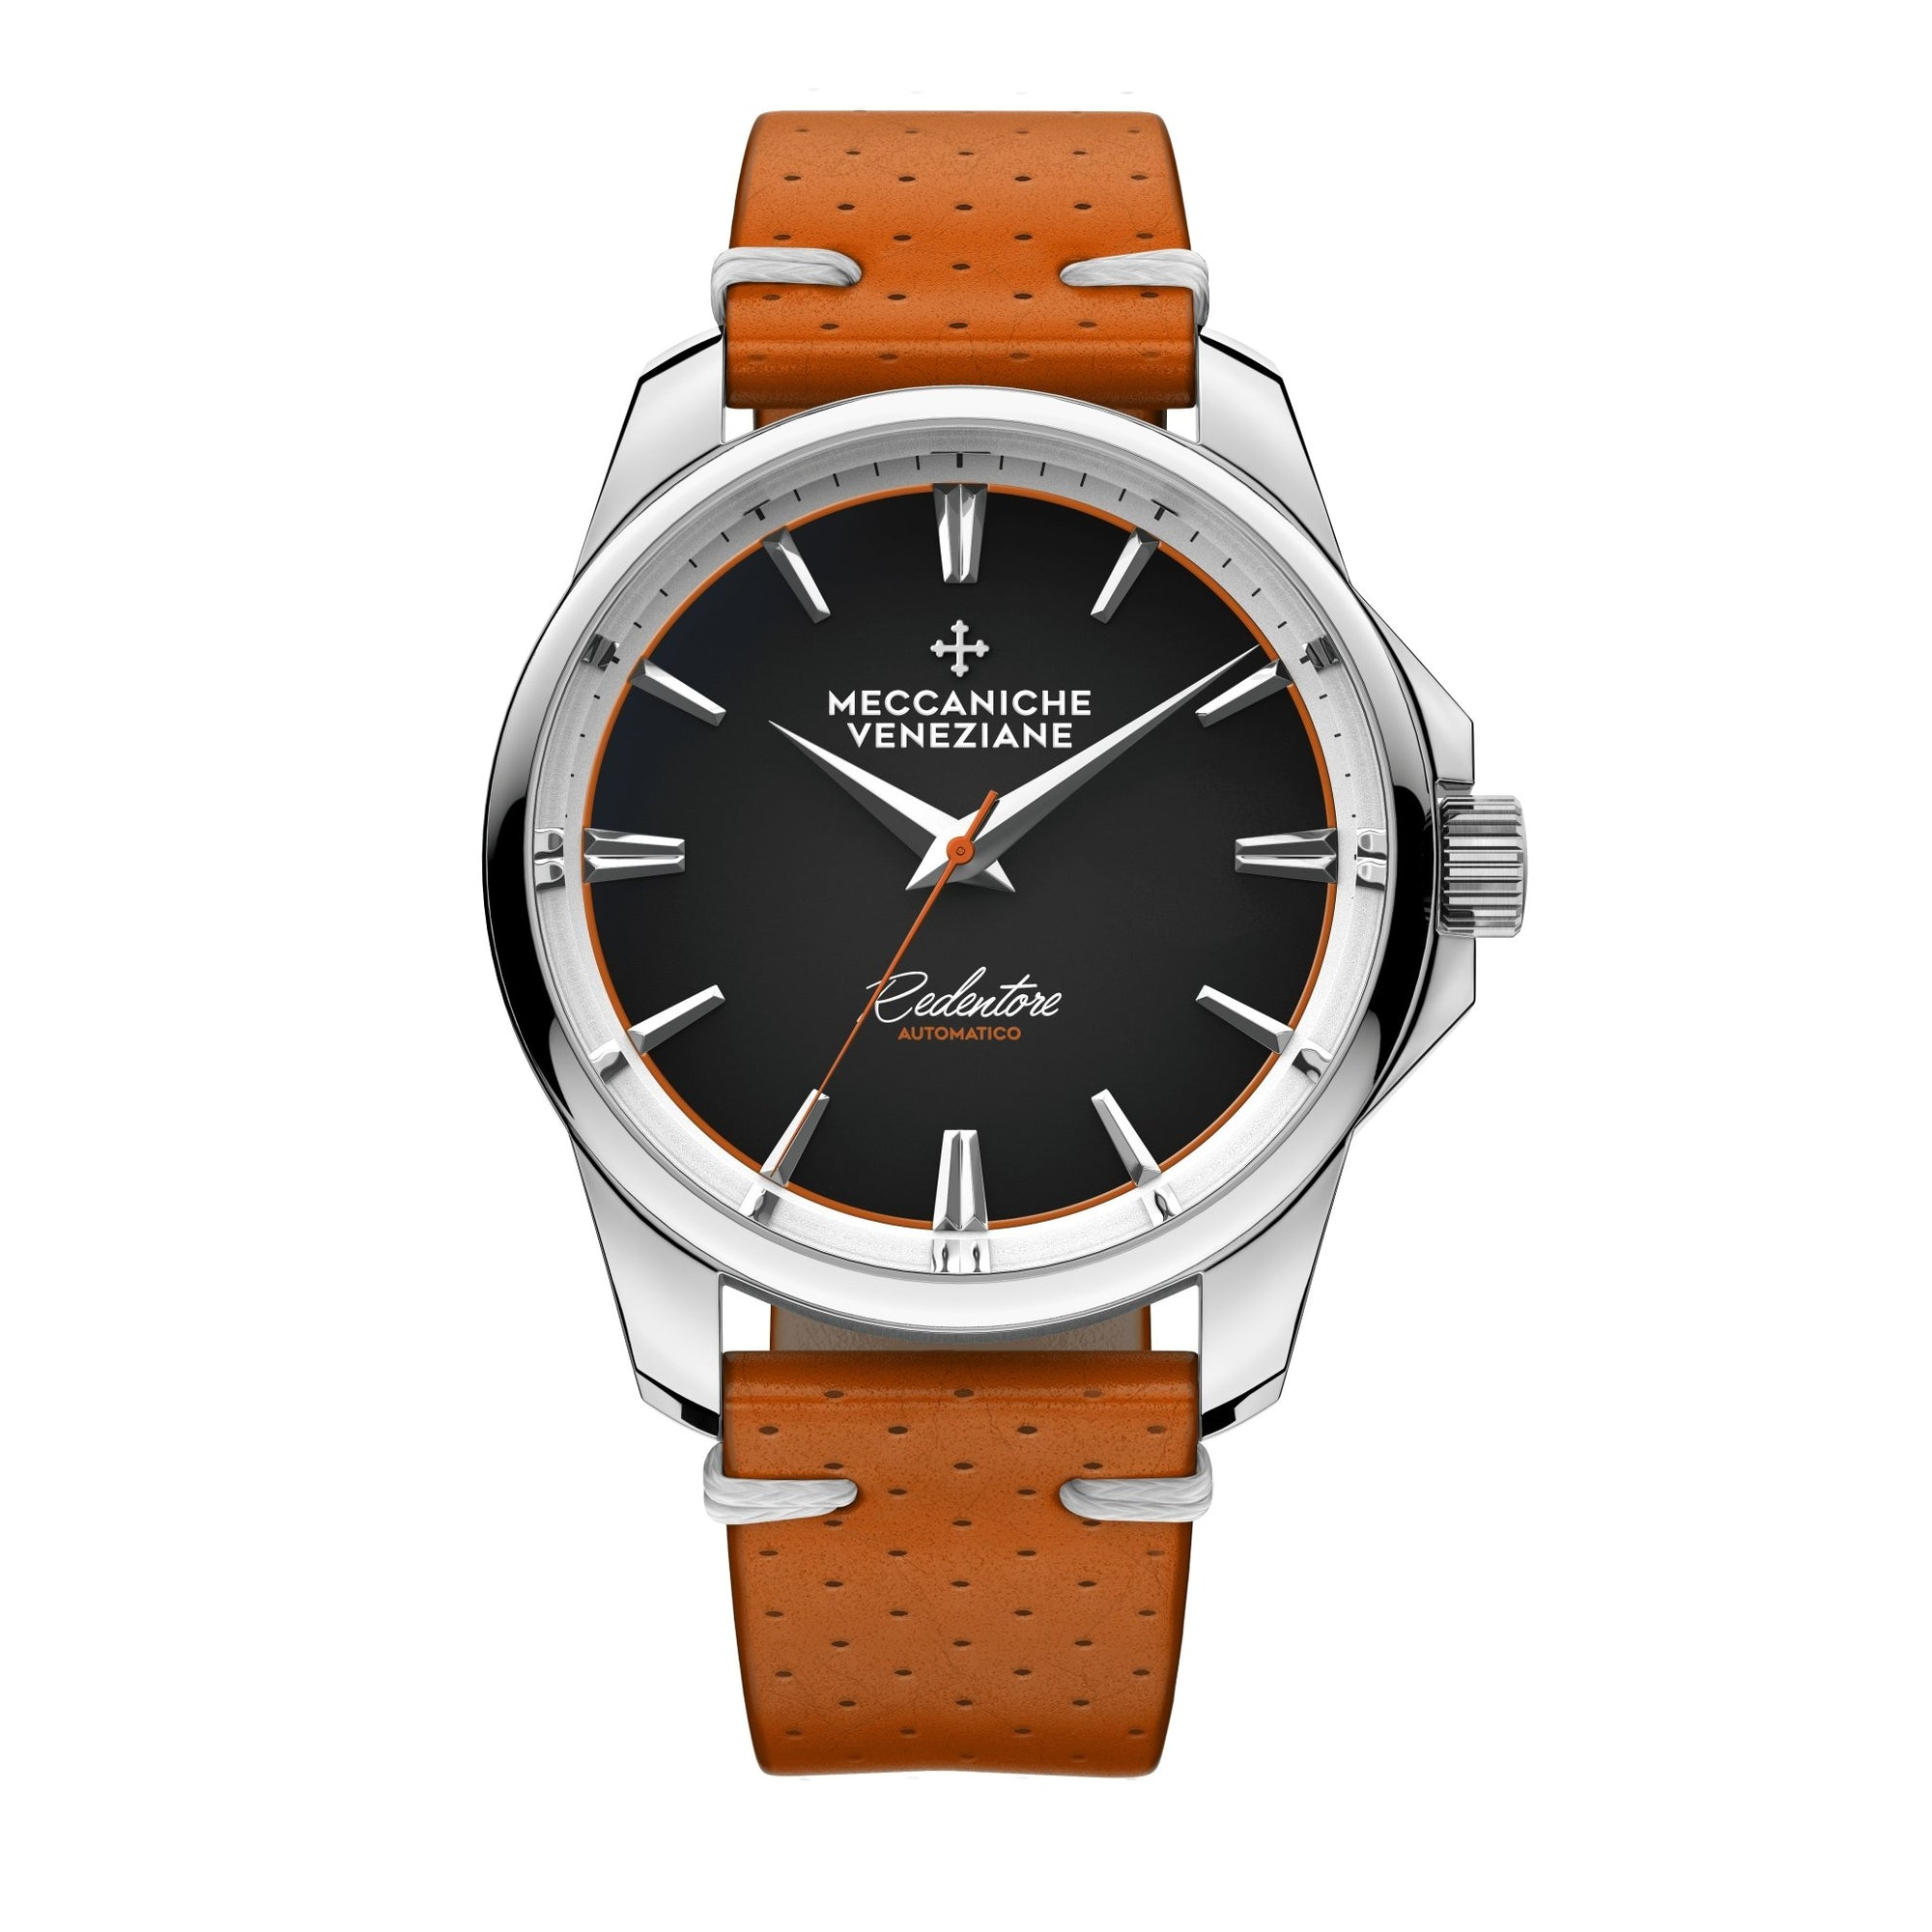 Meccaniche Veneziane Redentore Racing Orange - Watches & Crystals